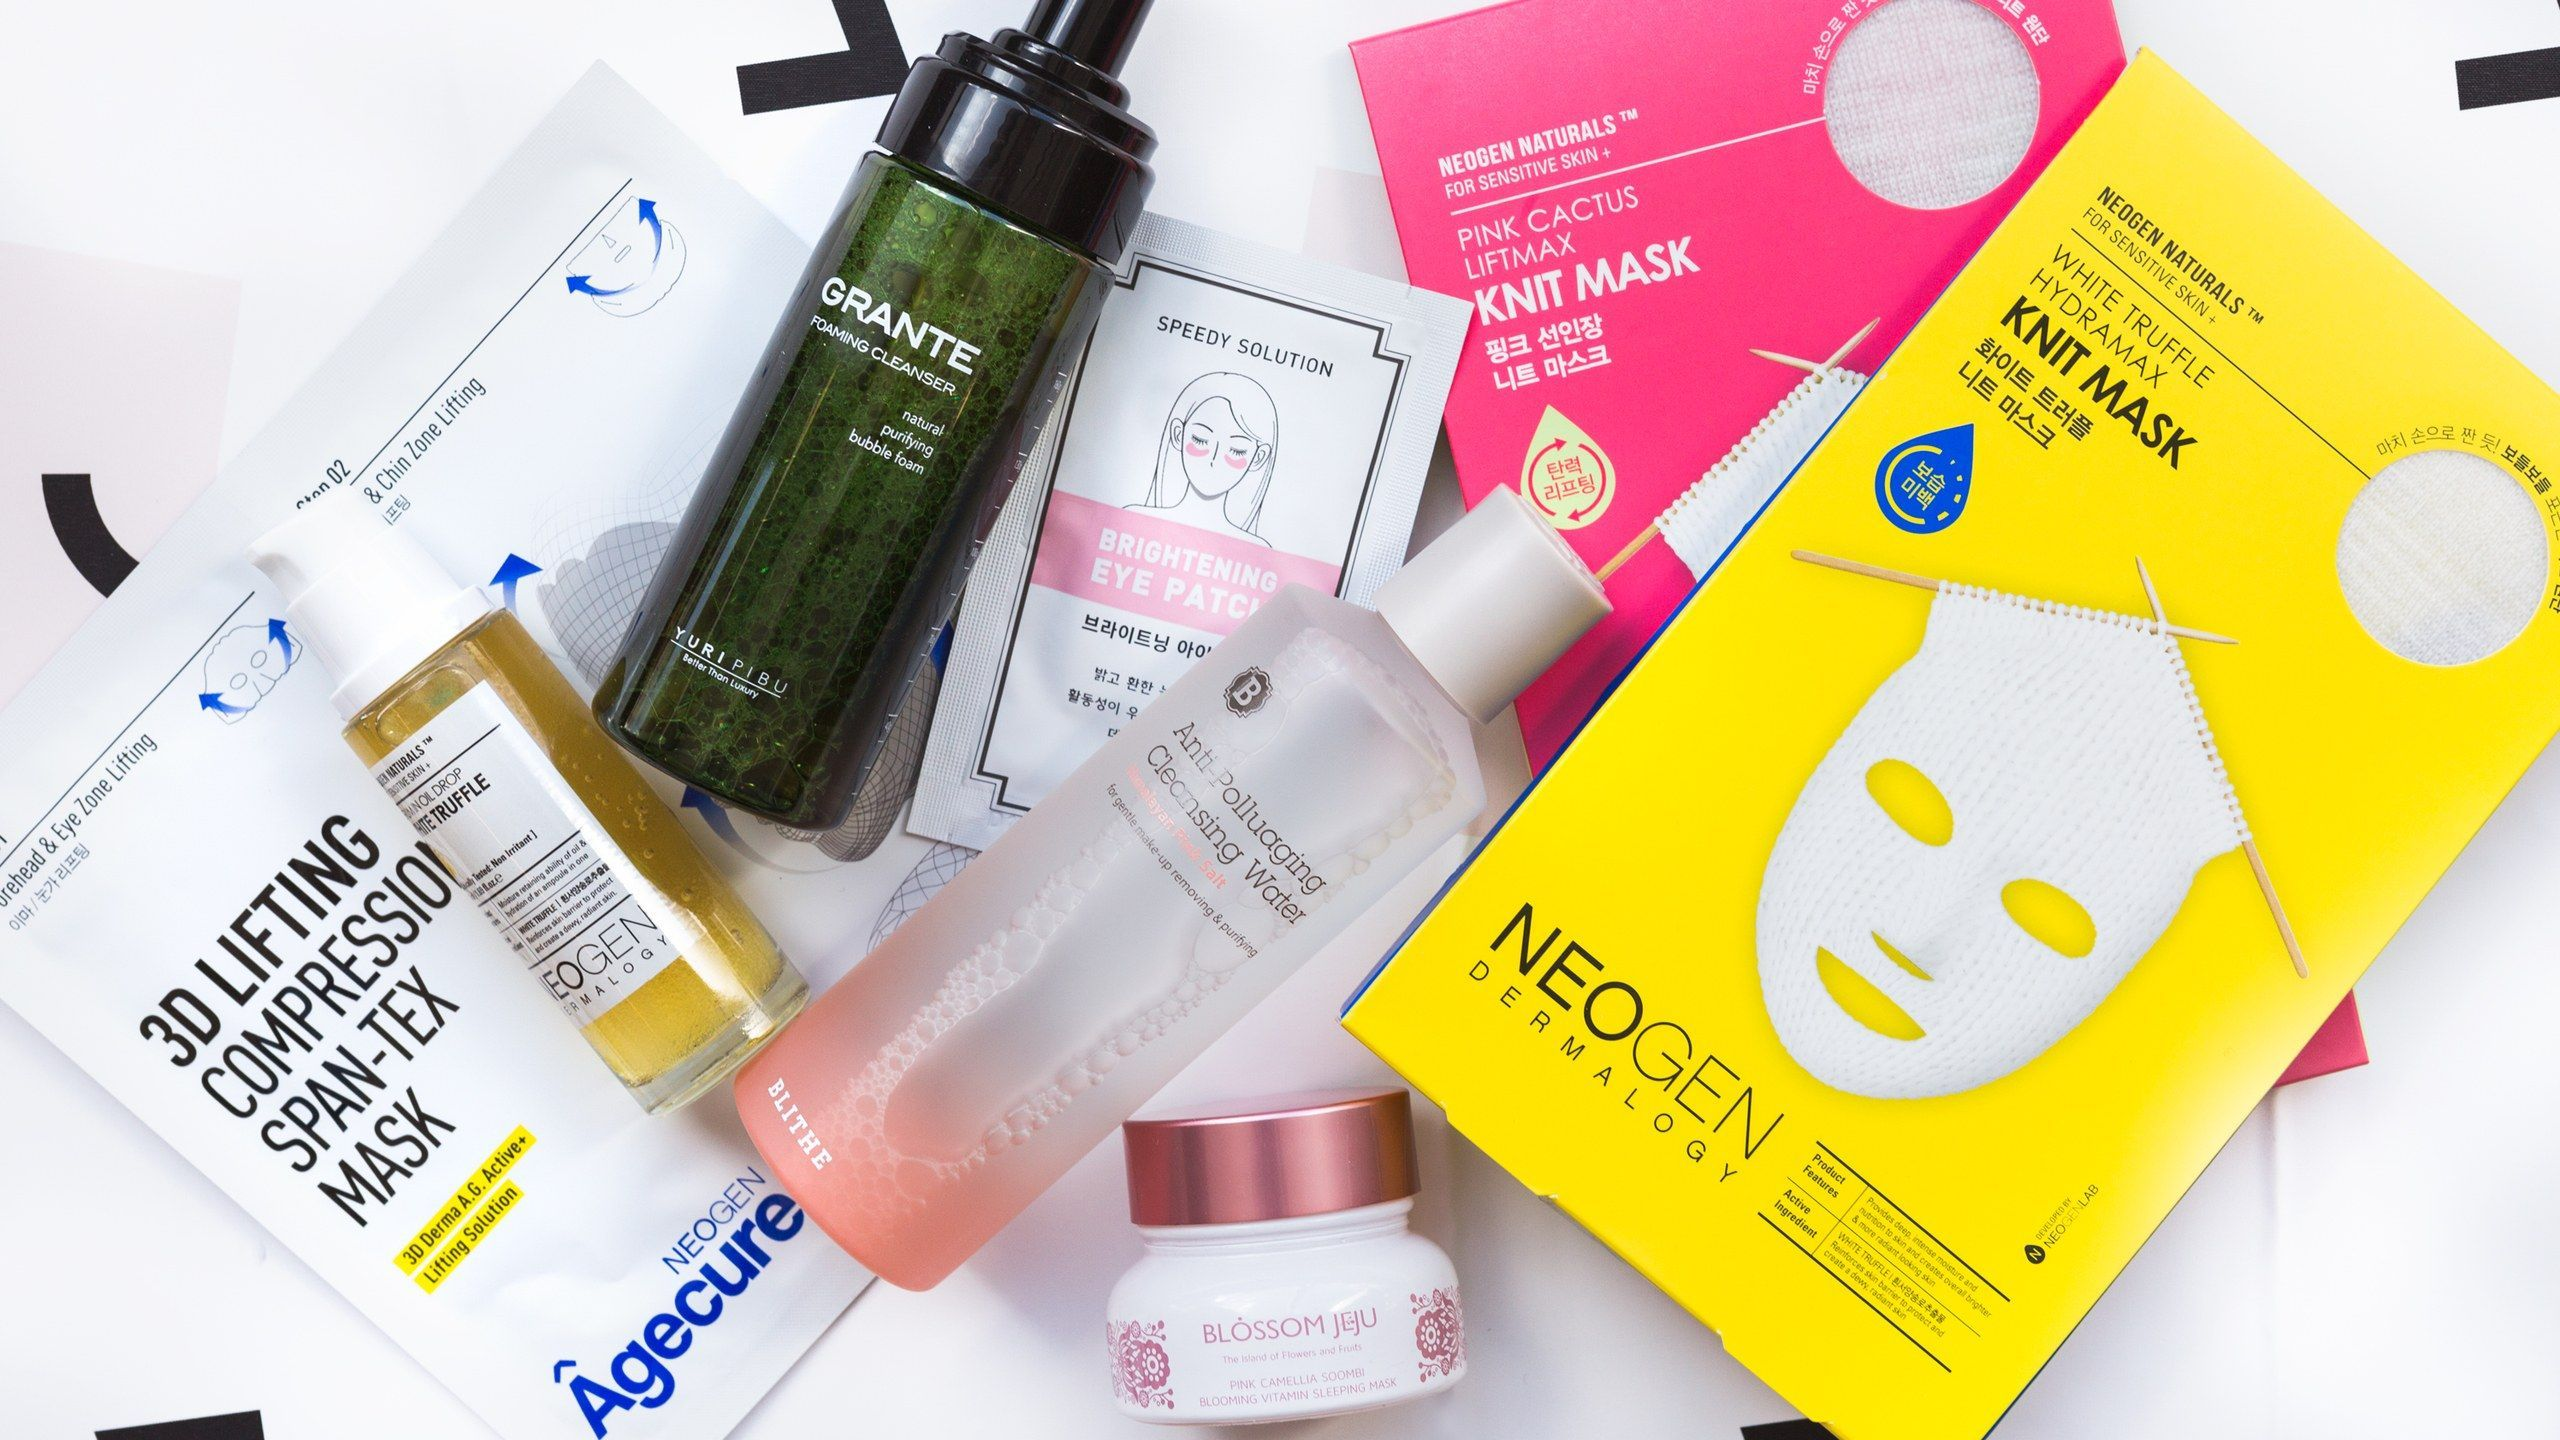 32 Best Korean Skin-Care Products of 2018 - K-Beauty Guide